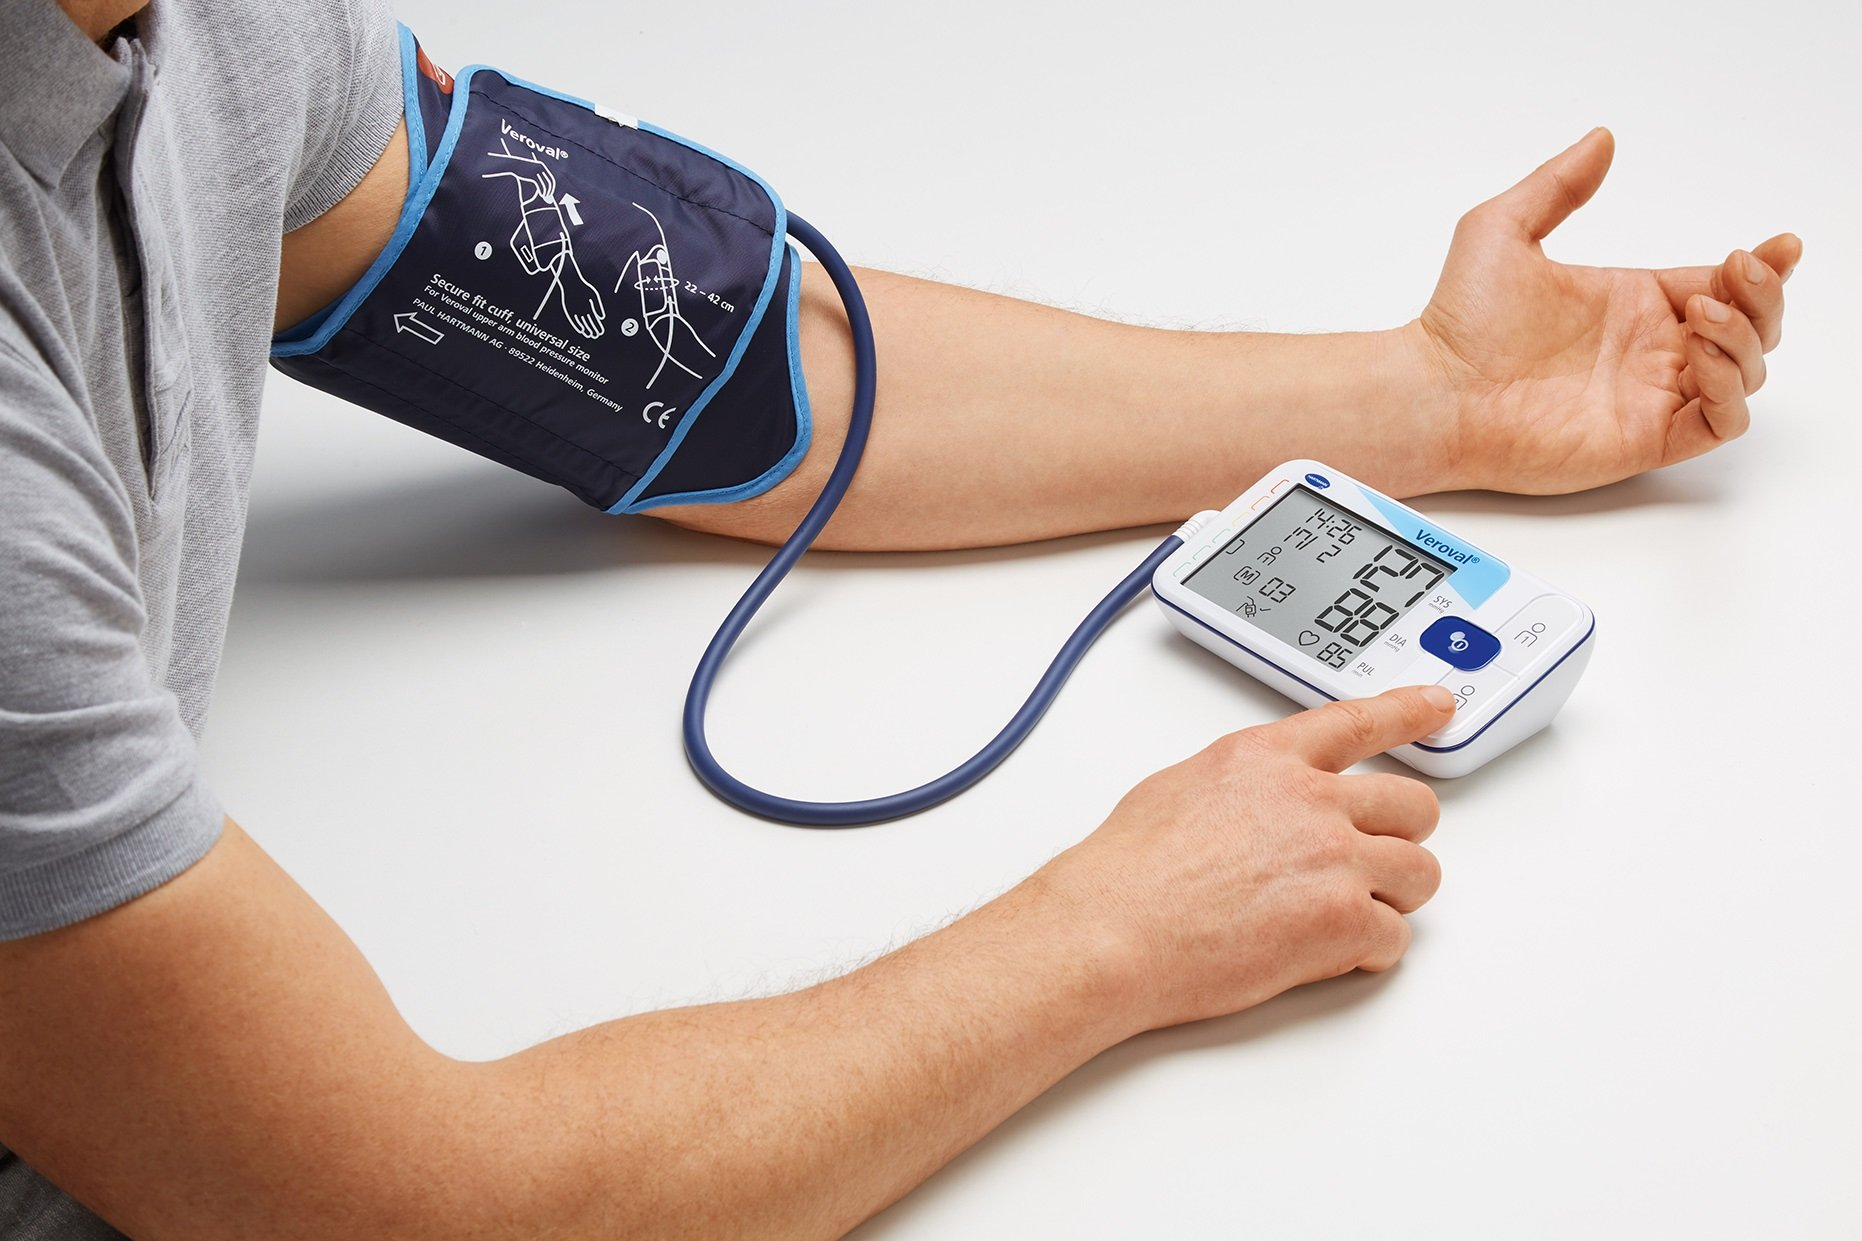 blood pressure monitor from Veroval®